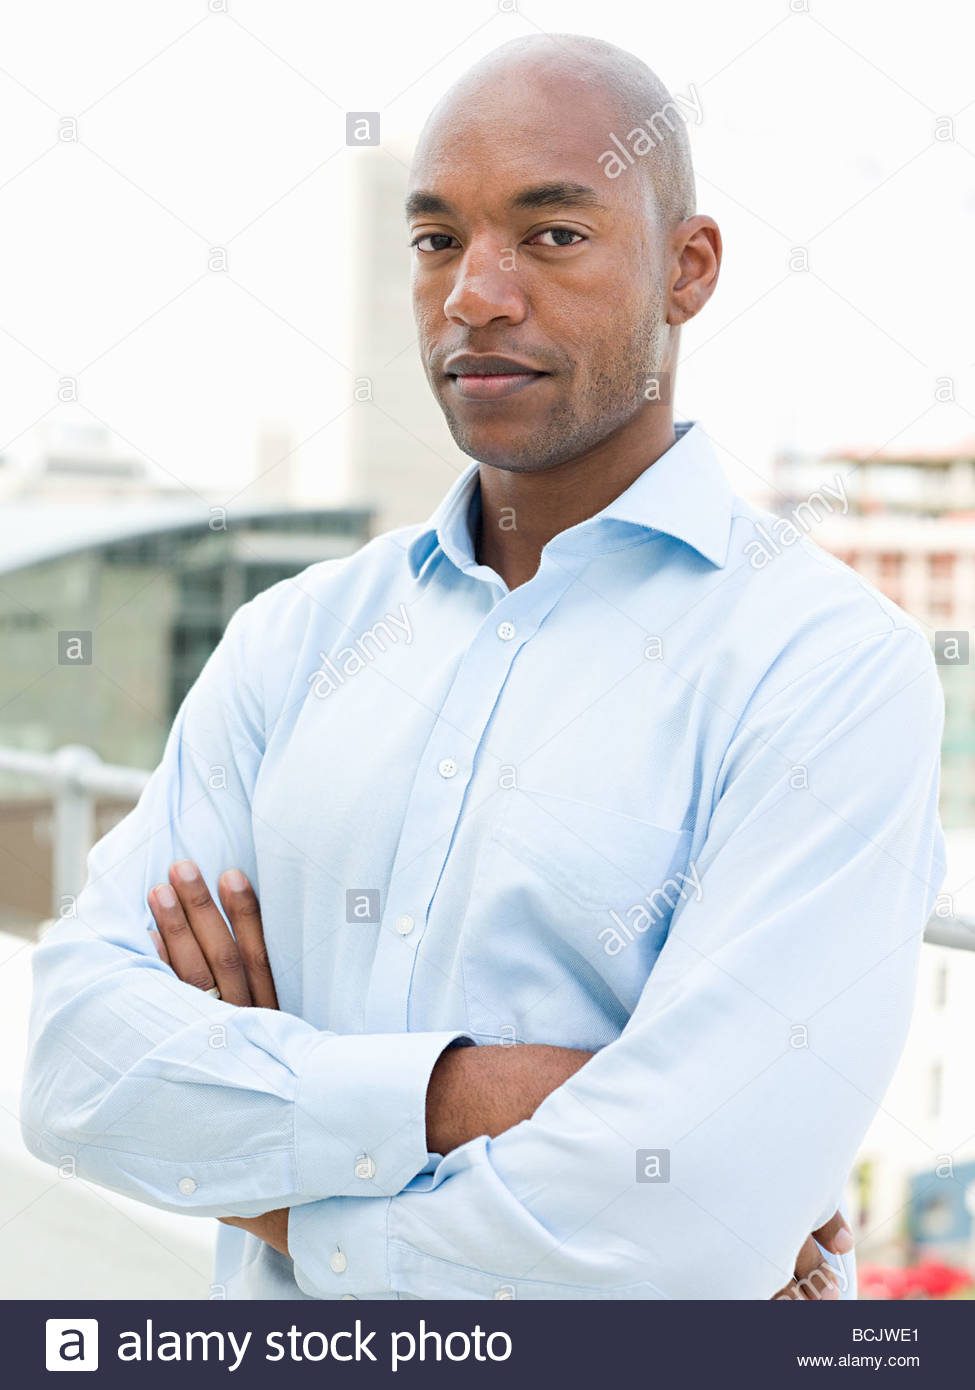 Portrait of businessman standing on balcony Photo Stock